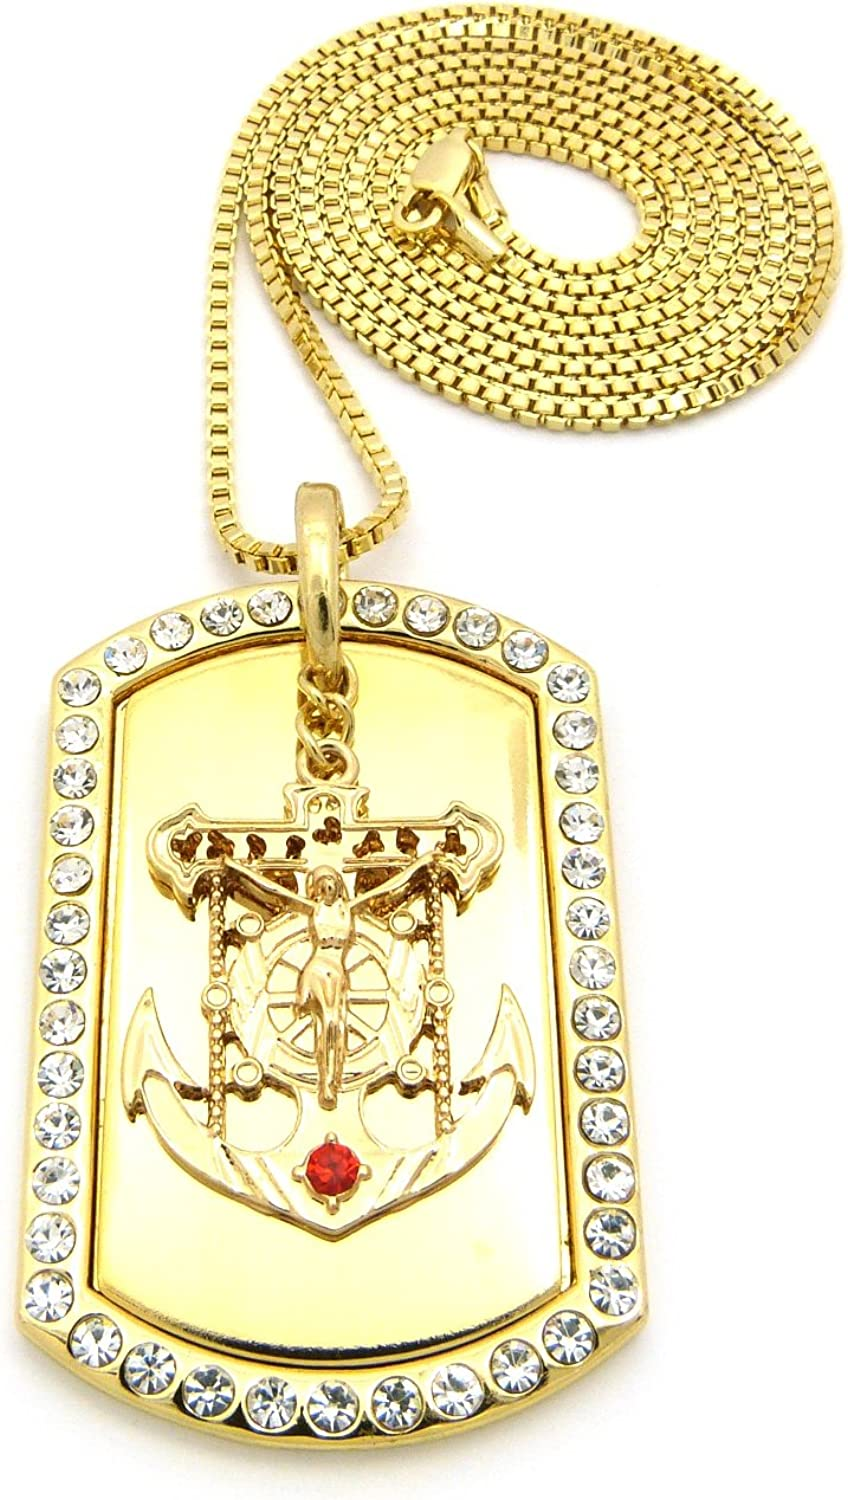 NYFASHION101 Pave Anchor Jesus Cross Piece Dog Tag Pendant 2mm 36 Box Chain Necklace in Gold-Tone